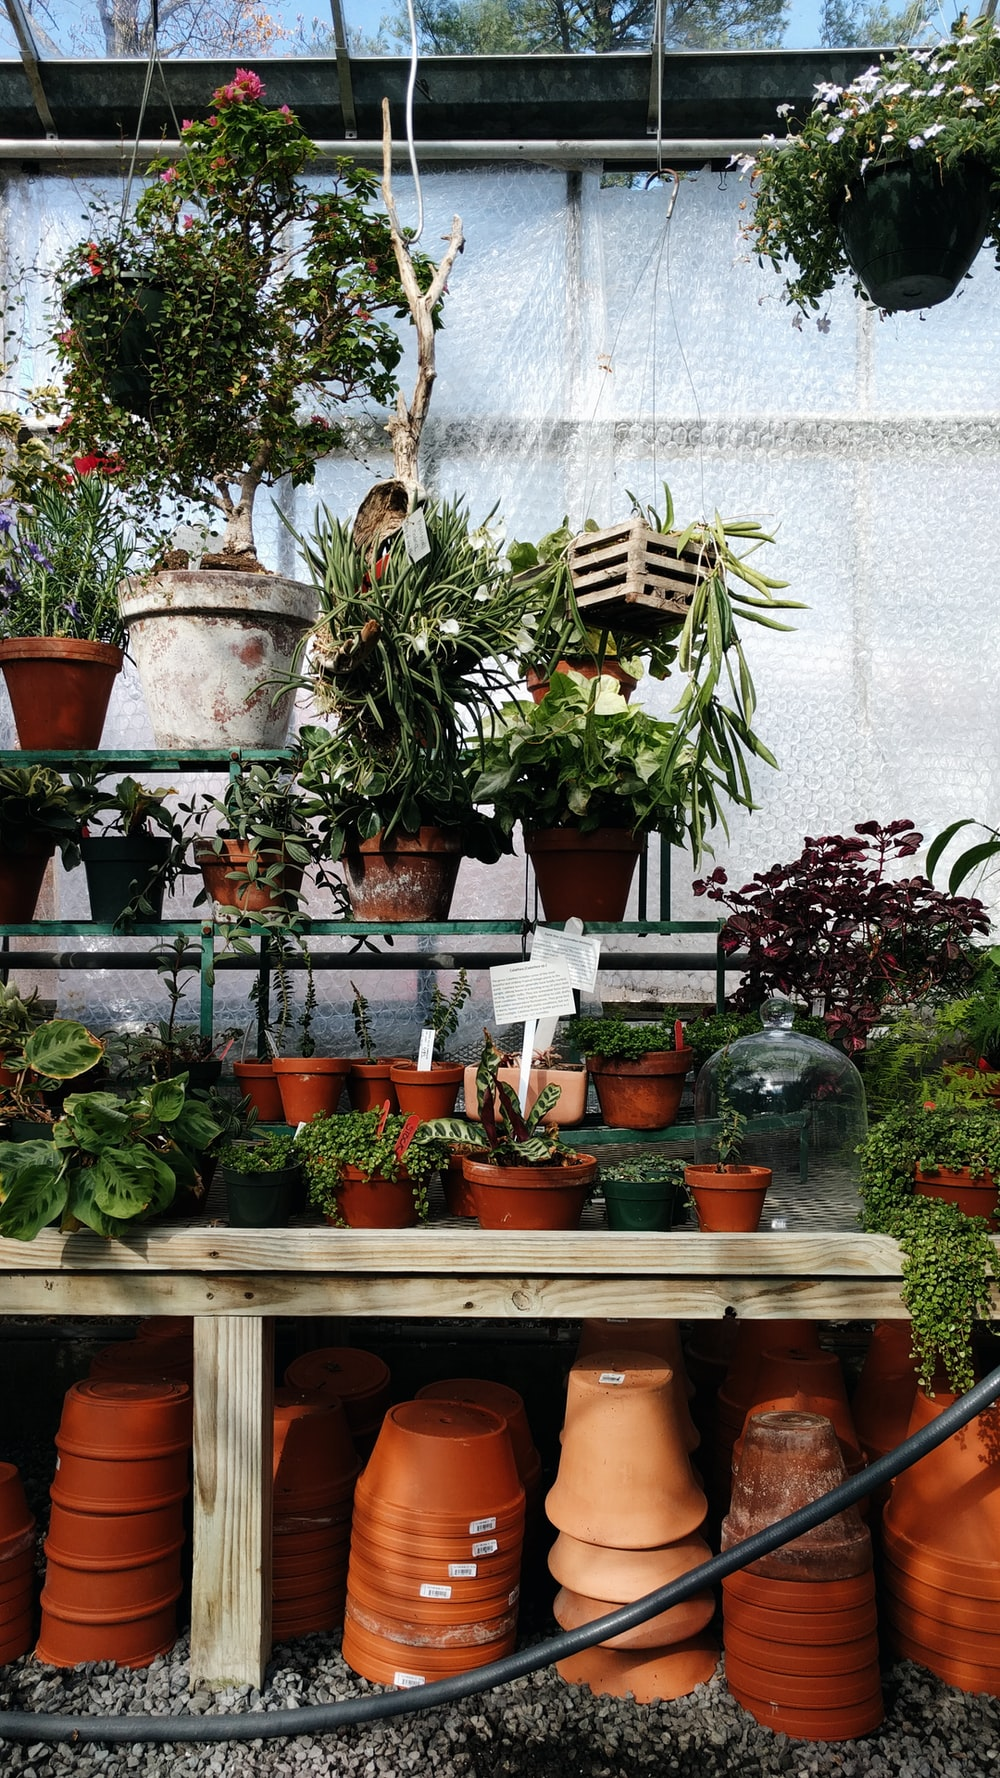 green potted plants on brown wooden shelf